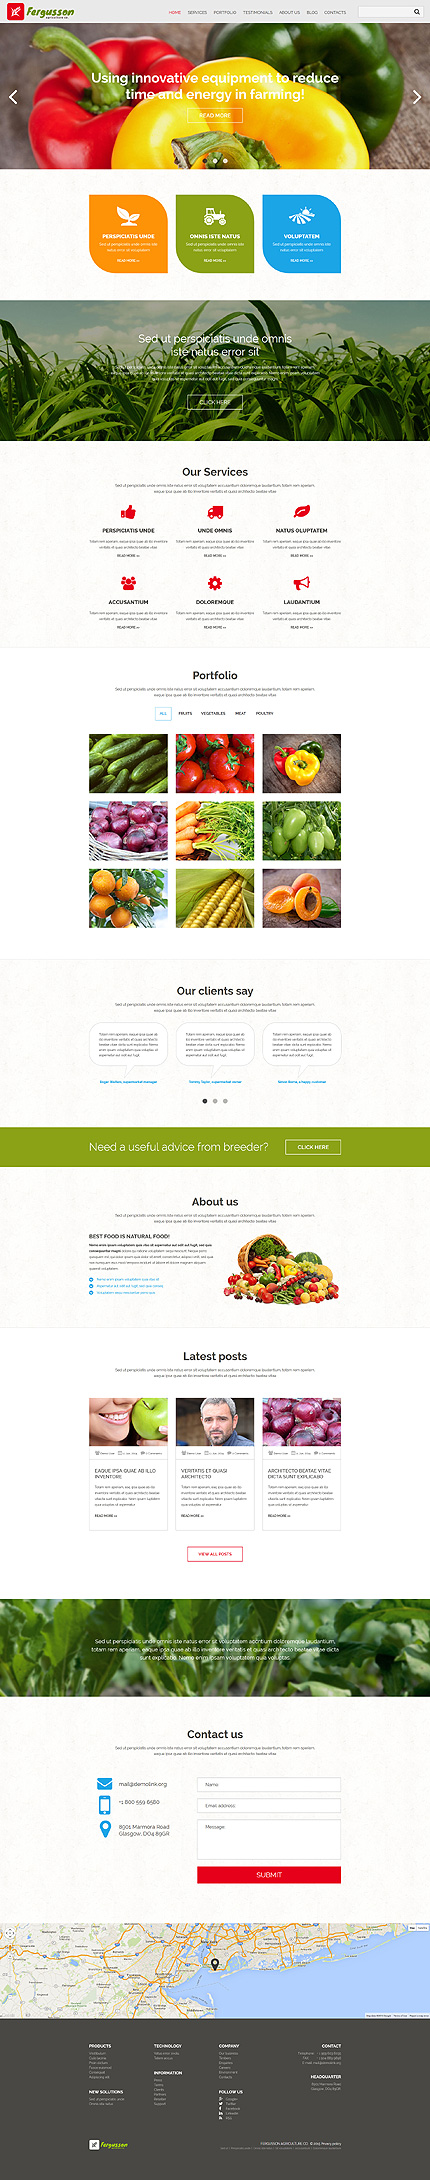 Joomla Theme/Template 54724 Main Page Screenshot